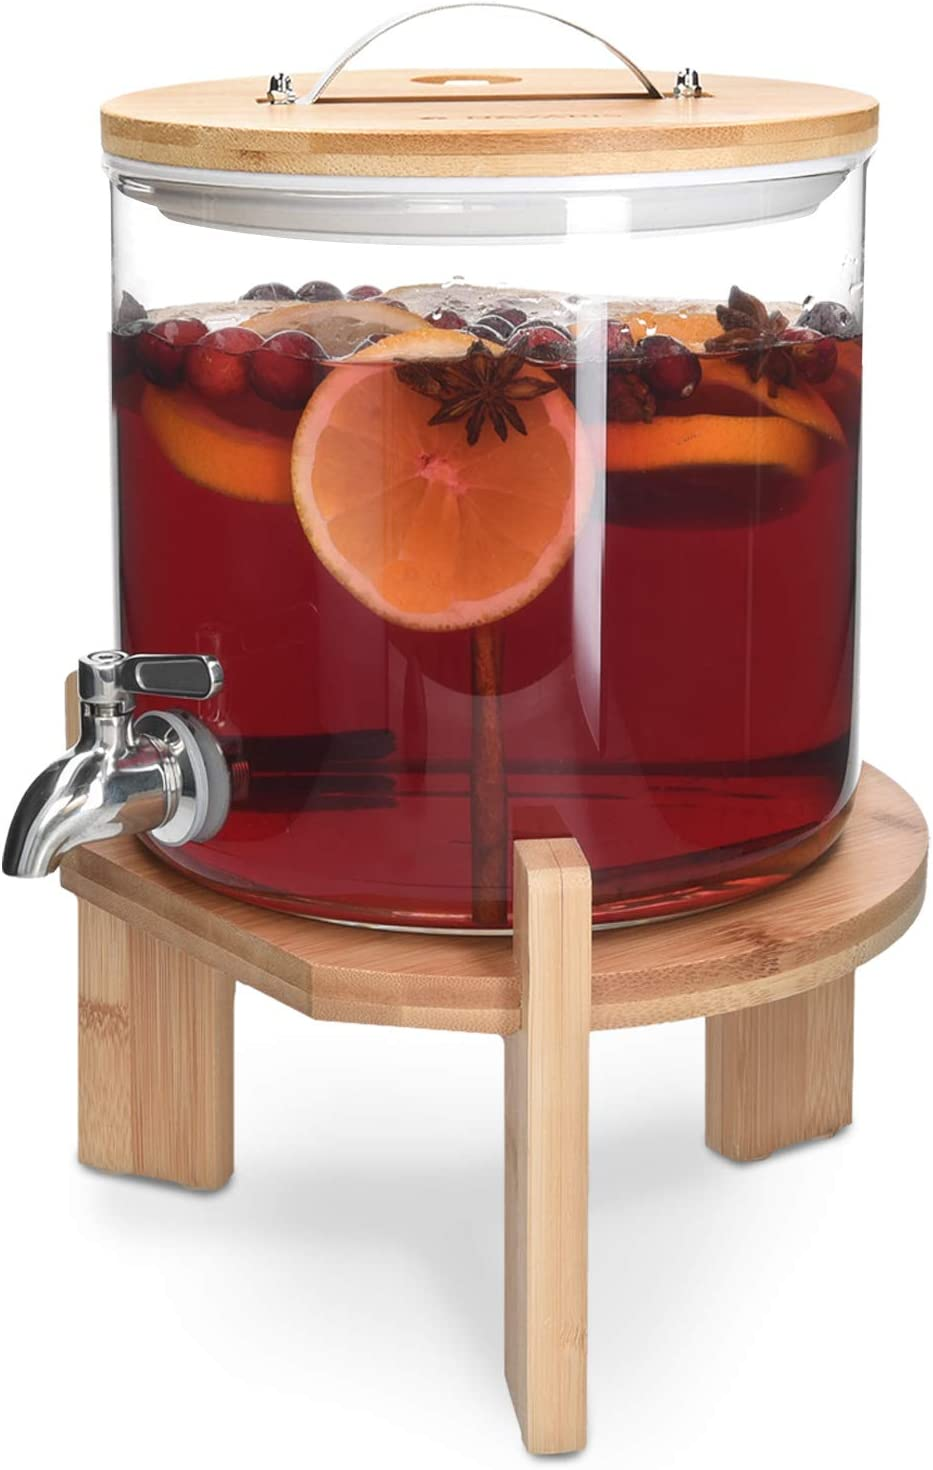 Navaris Beverage Dispenser with Stand - 1.3 Gallon (5L) Glass Drink Dispenser with Spigot, Lid, Wood Stand for Hot or Cold Drinks, Ice Water, Parties